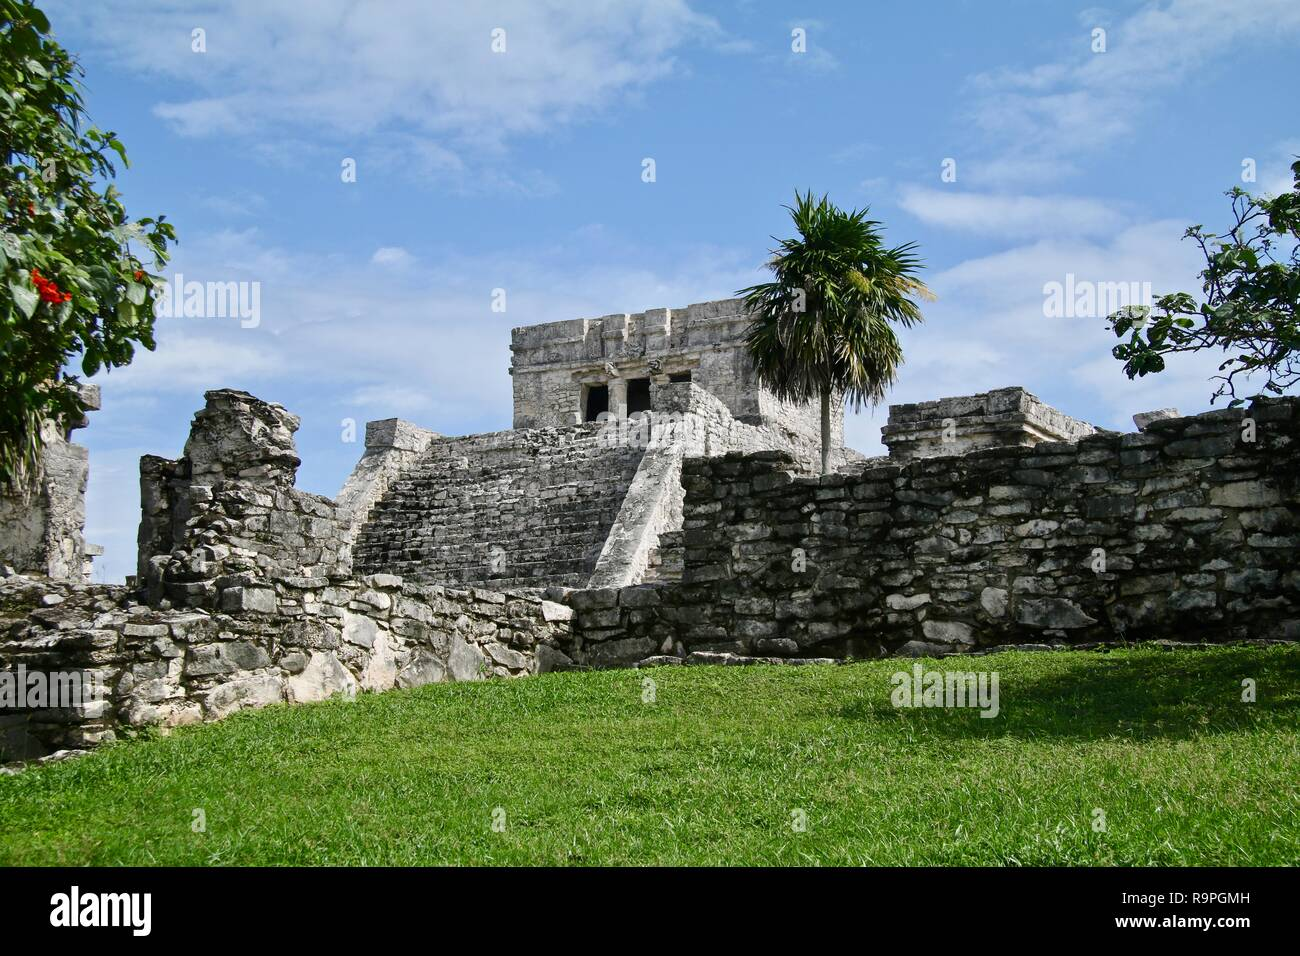 White stone Mayan ruins in Mexico - Stock Image